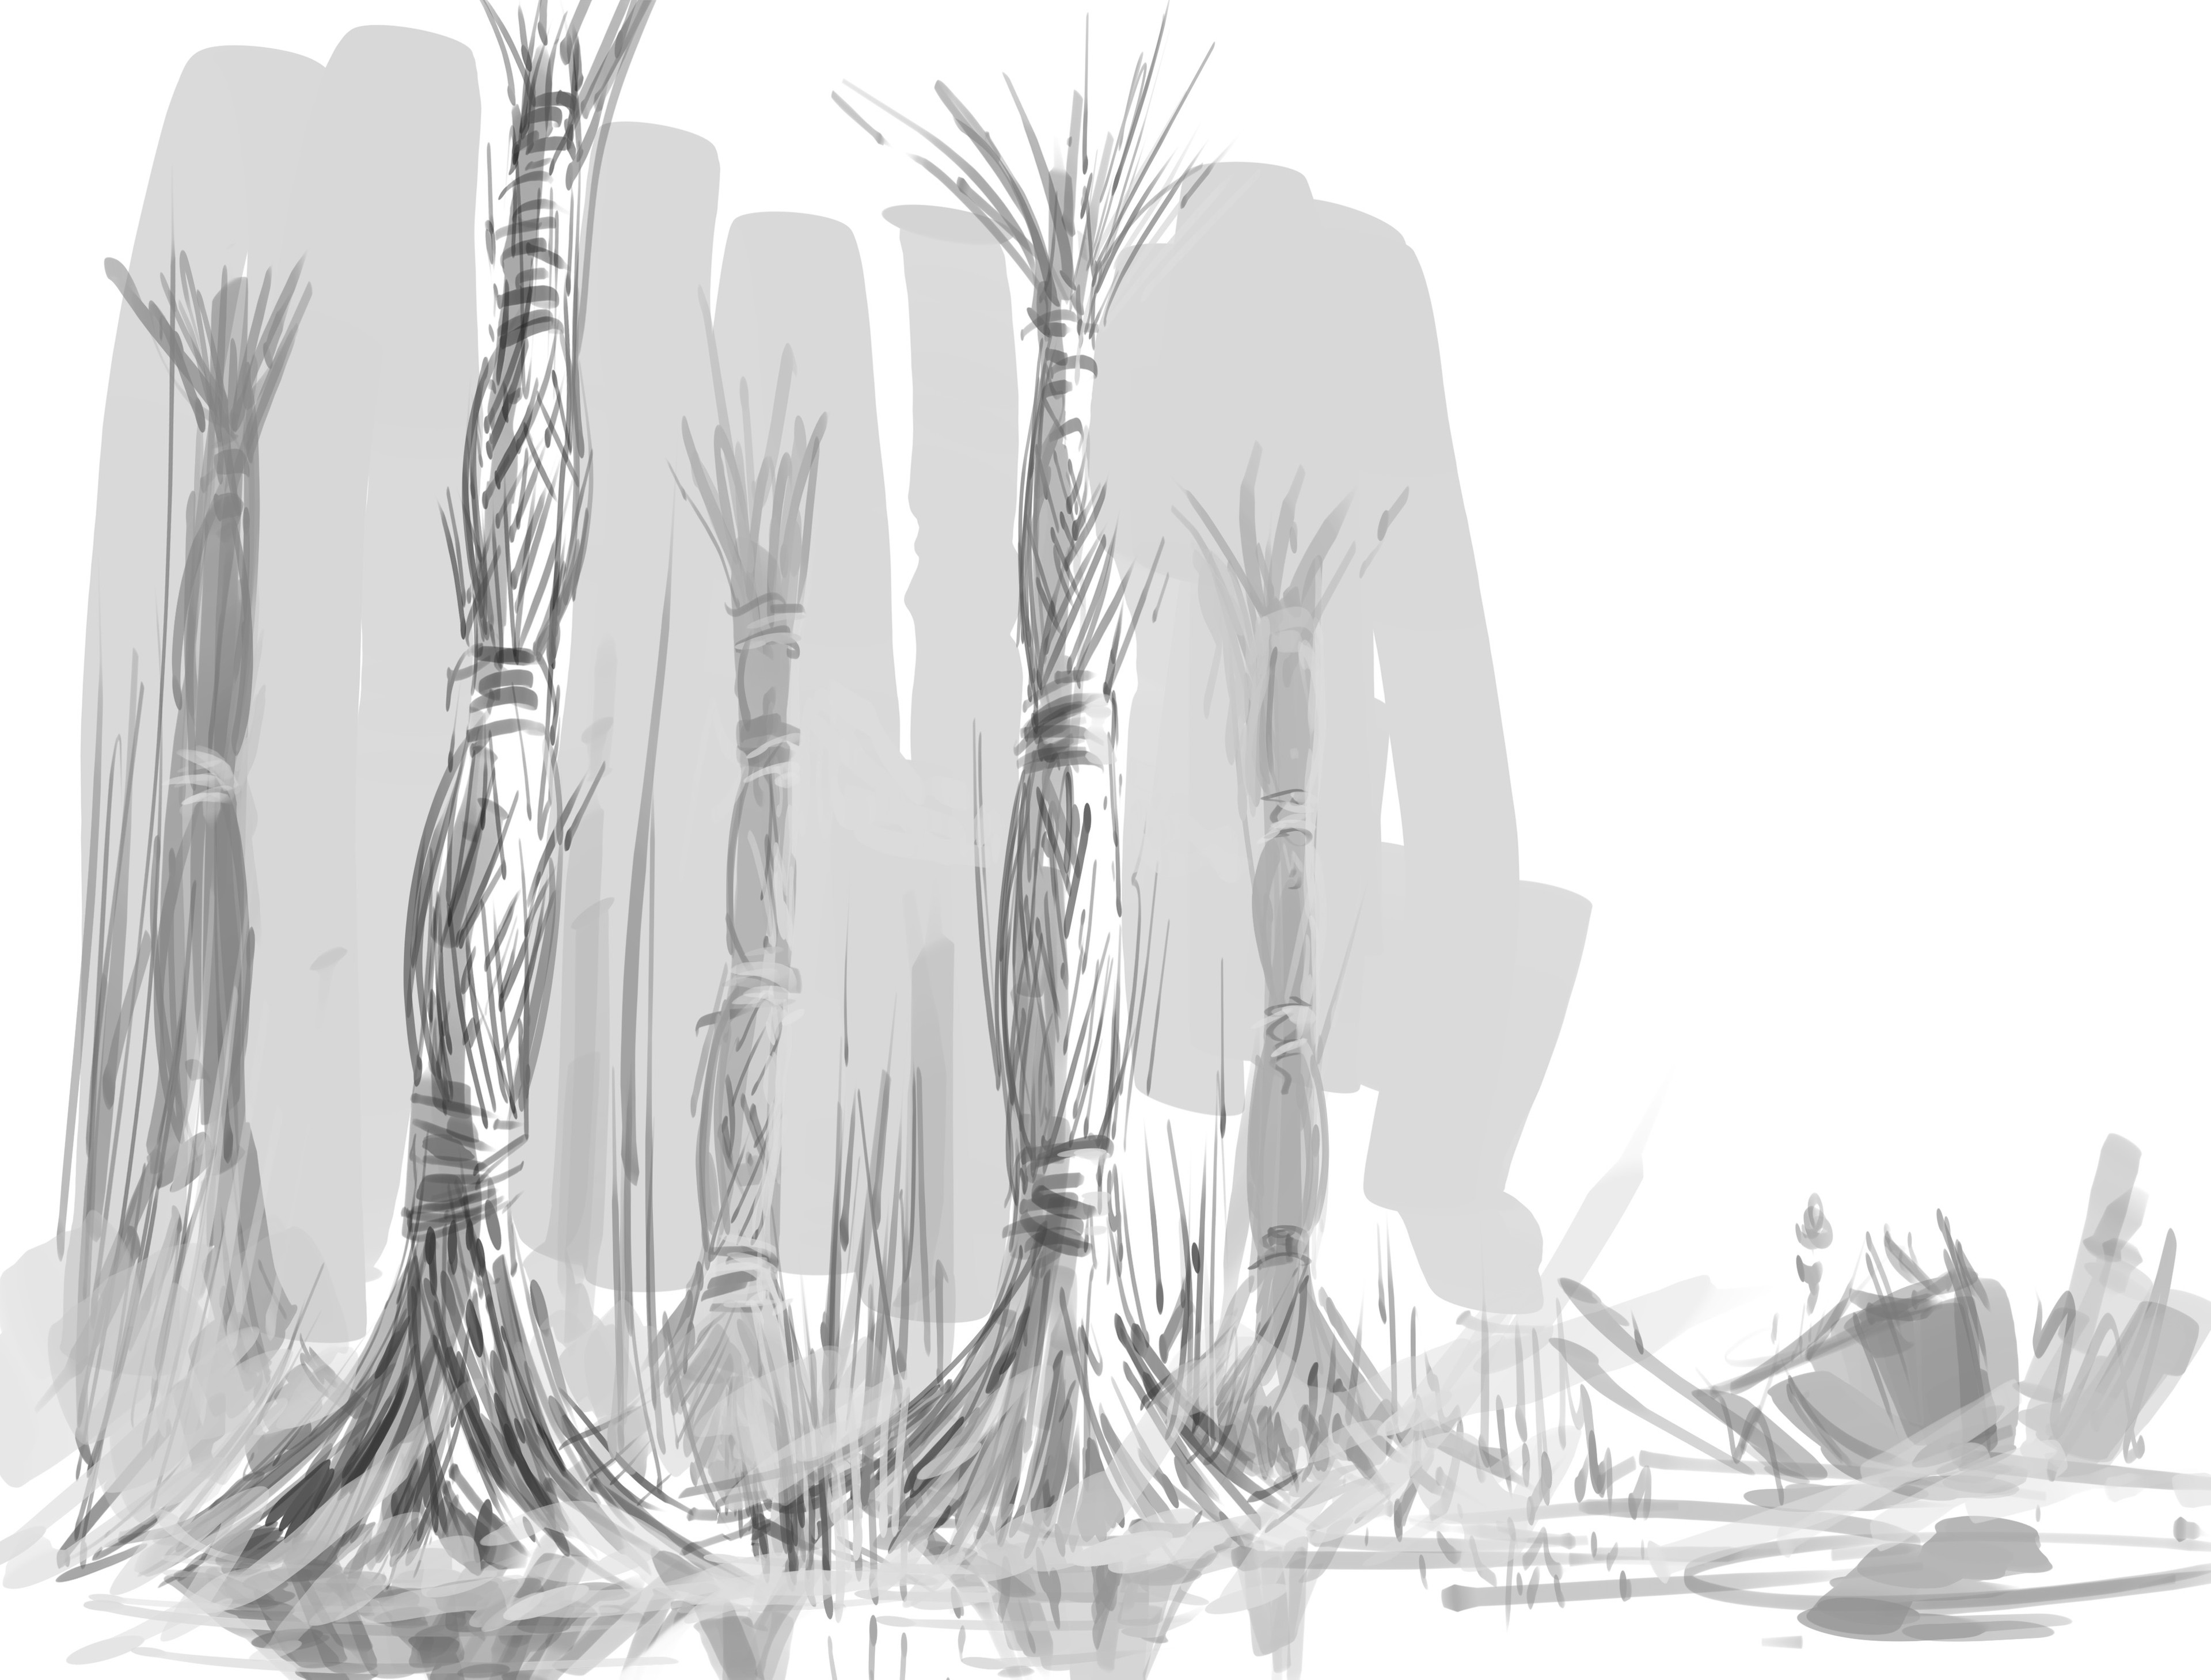 A quick sketch of how the tall reeds might be bundled.